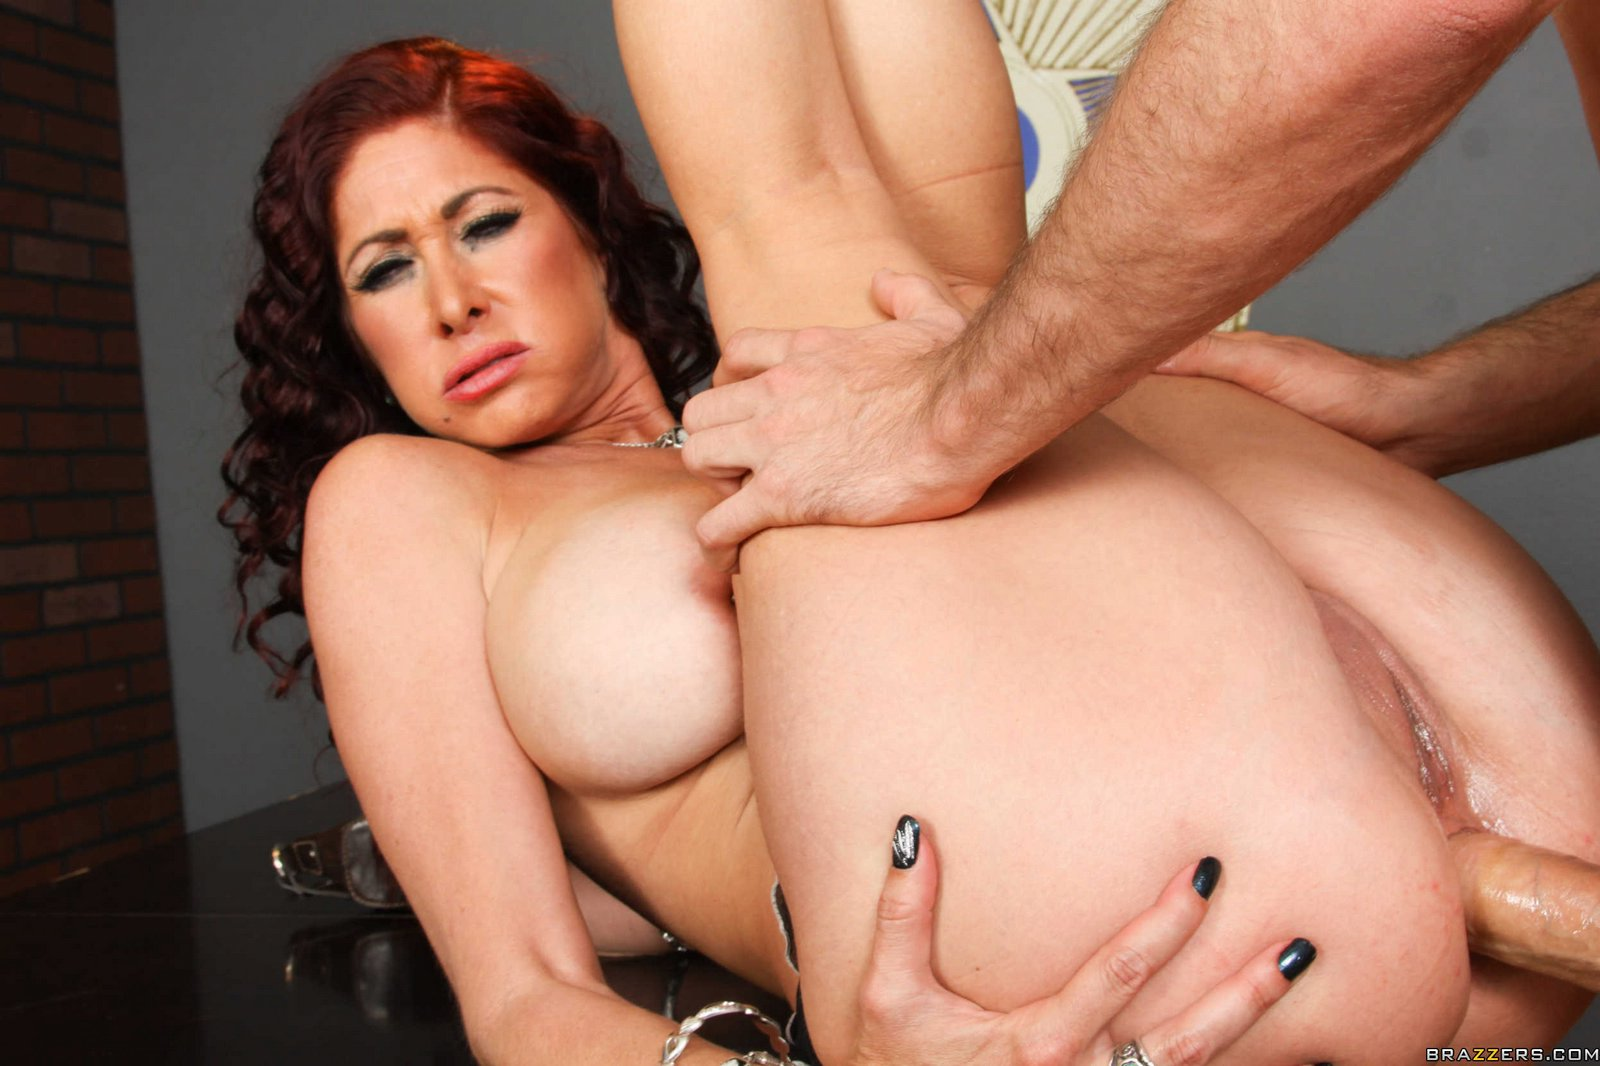 Naughty redhead Tiffany Mynx takes huge cock in her pussy and ass.